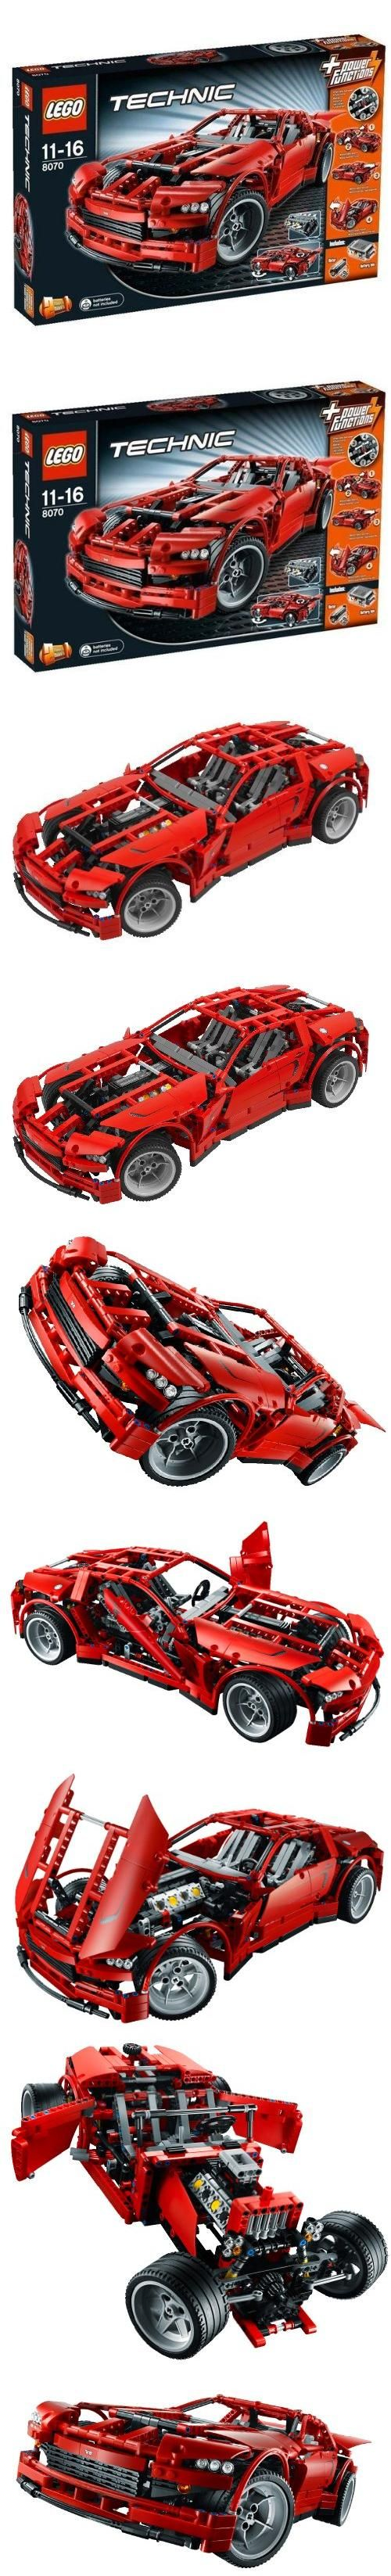 LEGO Technic Super Car (8070), LEGO Technic Set #8070 Supercar, #Toys, #Building Sets